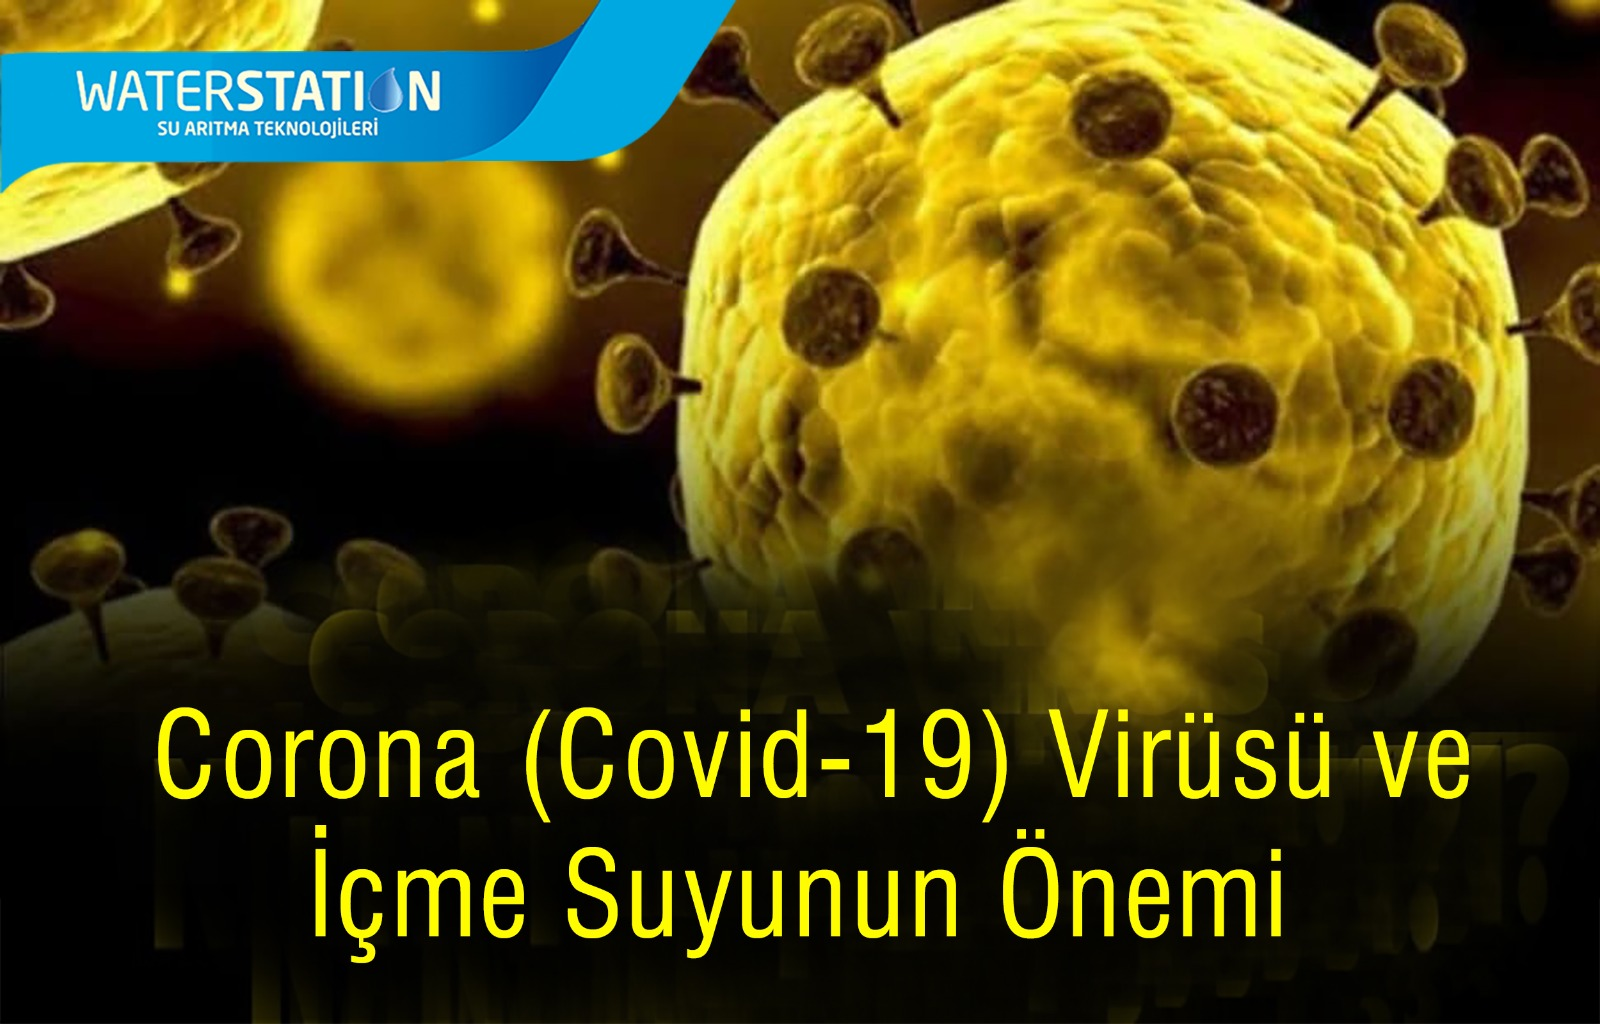 WhatsApp Image 2020-03-17 at 09.49.40.jpeg